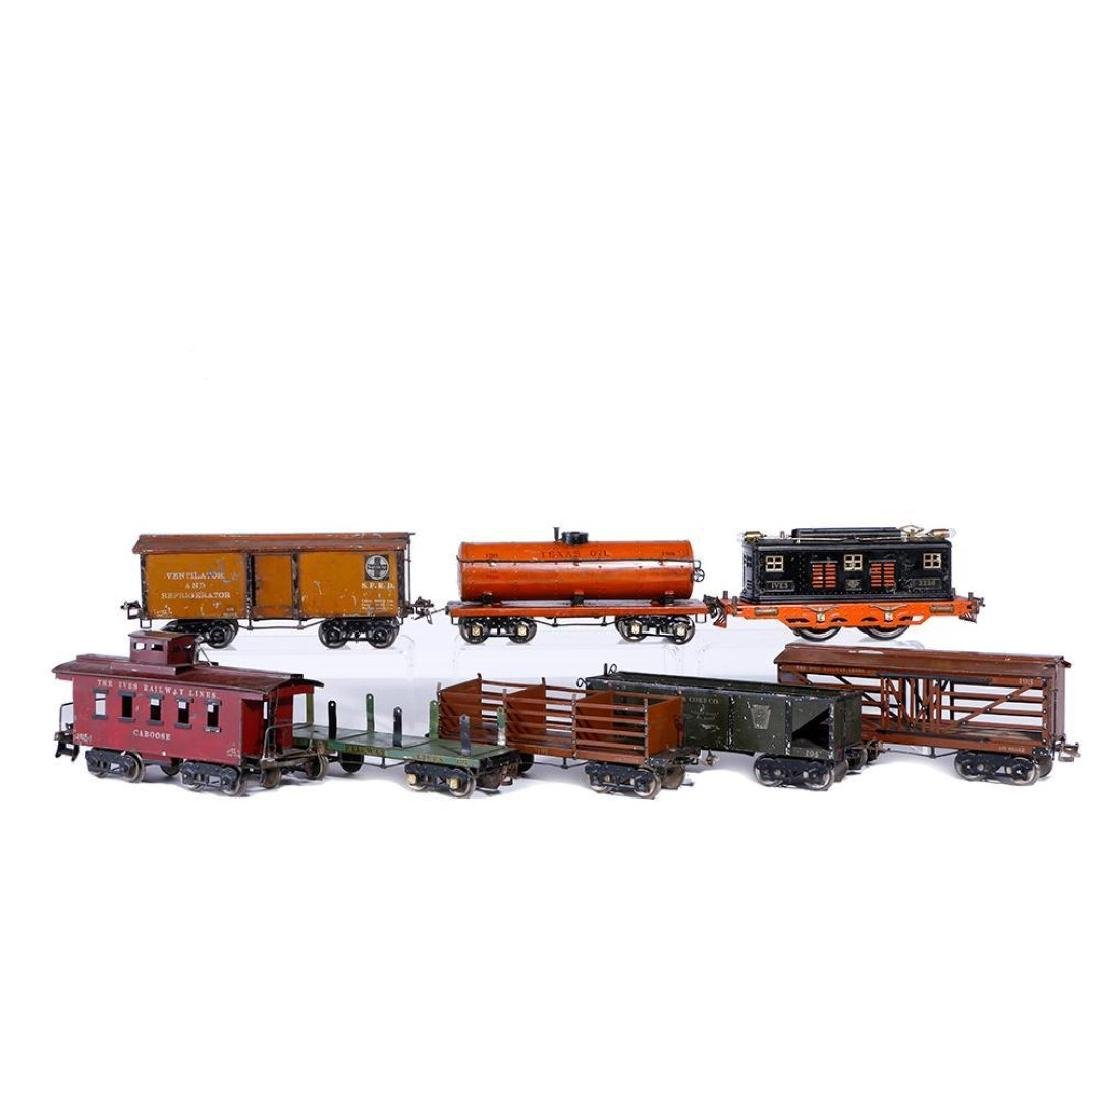 Ives Standard Gauge 3236 Locomotive with 7 Freights